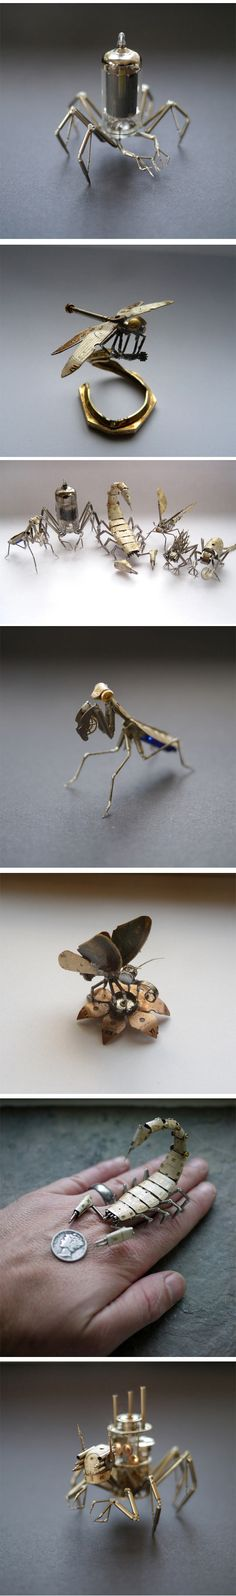 Tiny steampunk insects...